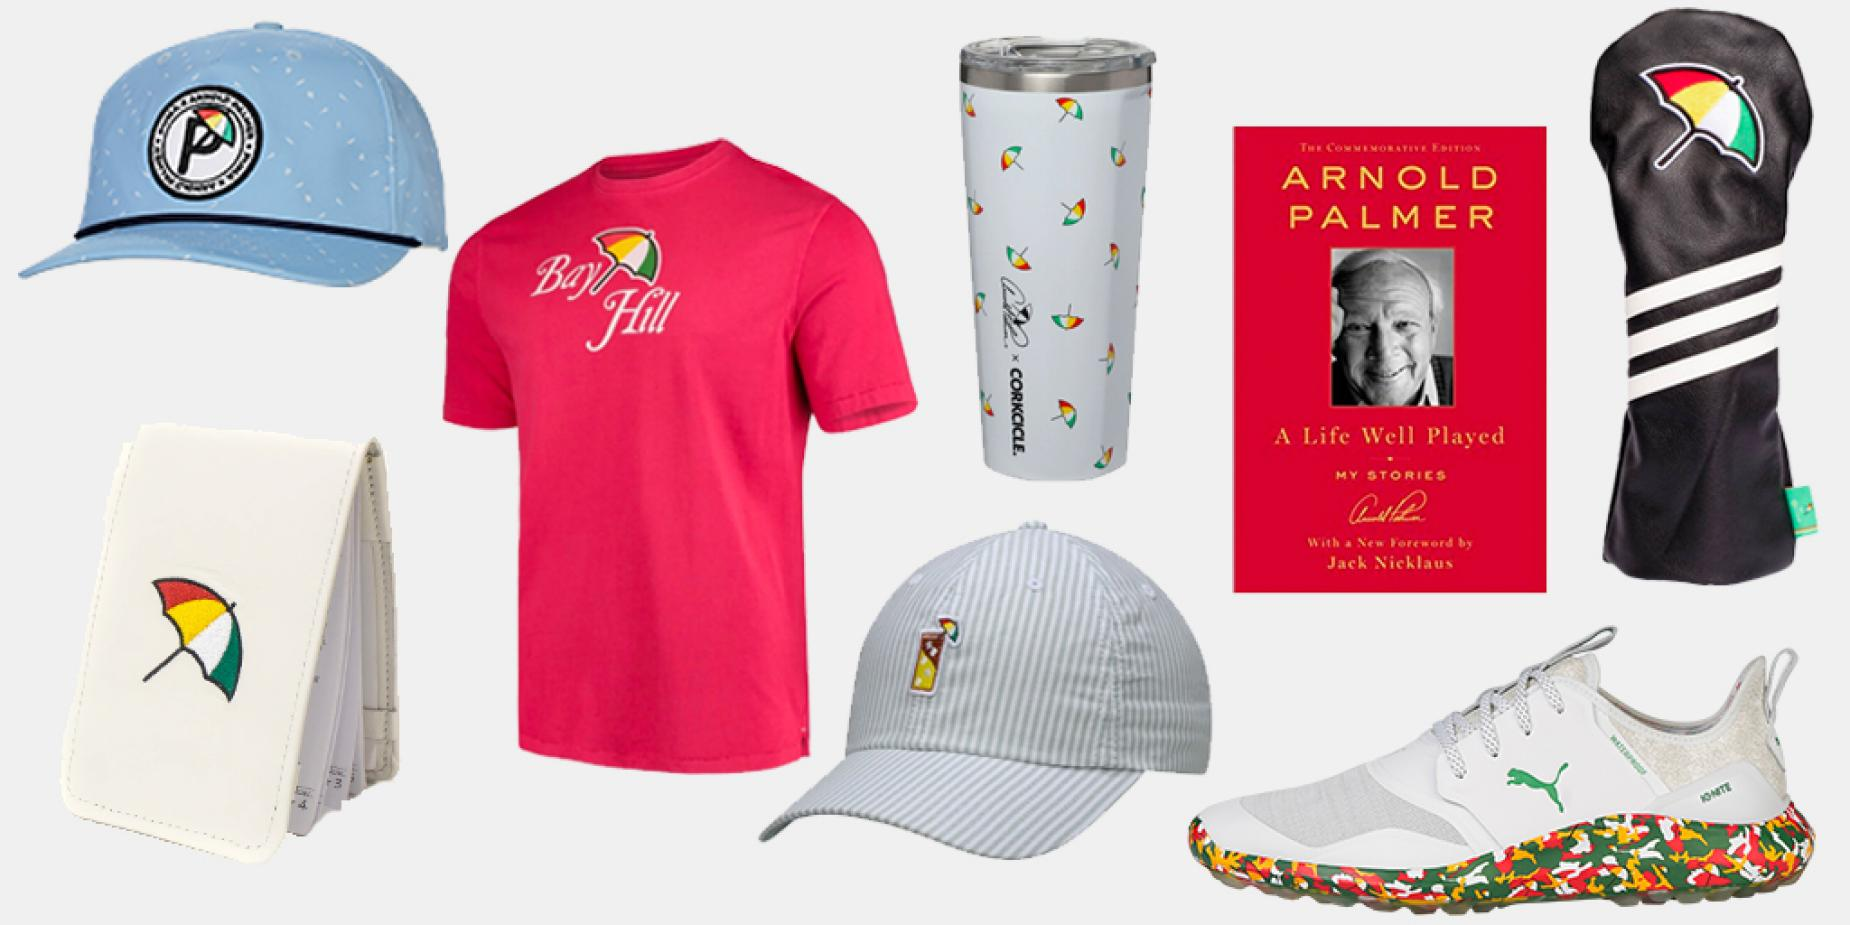 Arnold Palmer Invitational Golf Gear.jpg